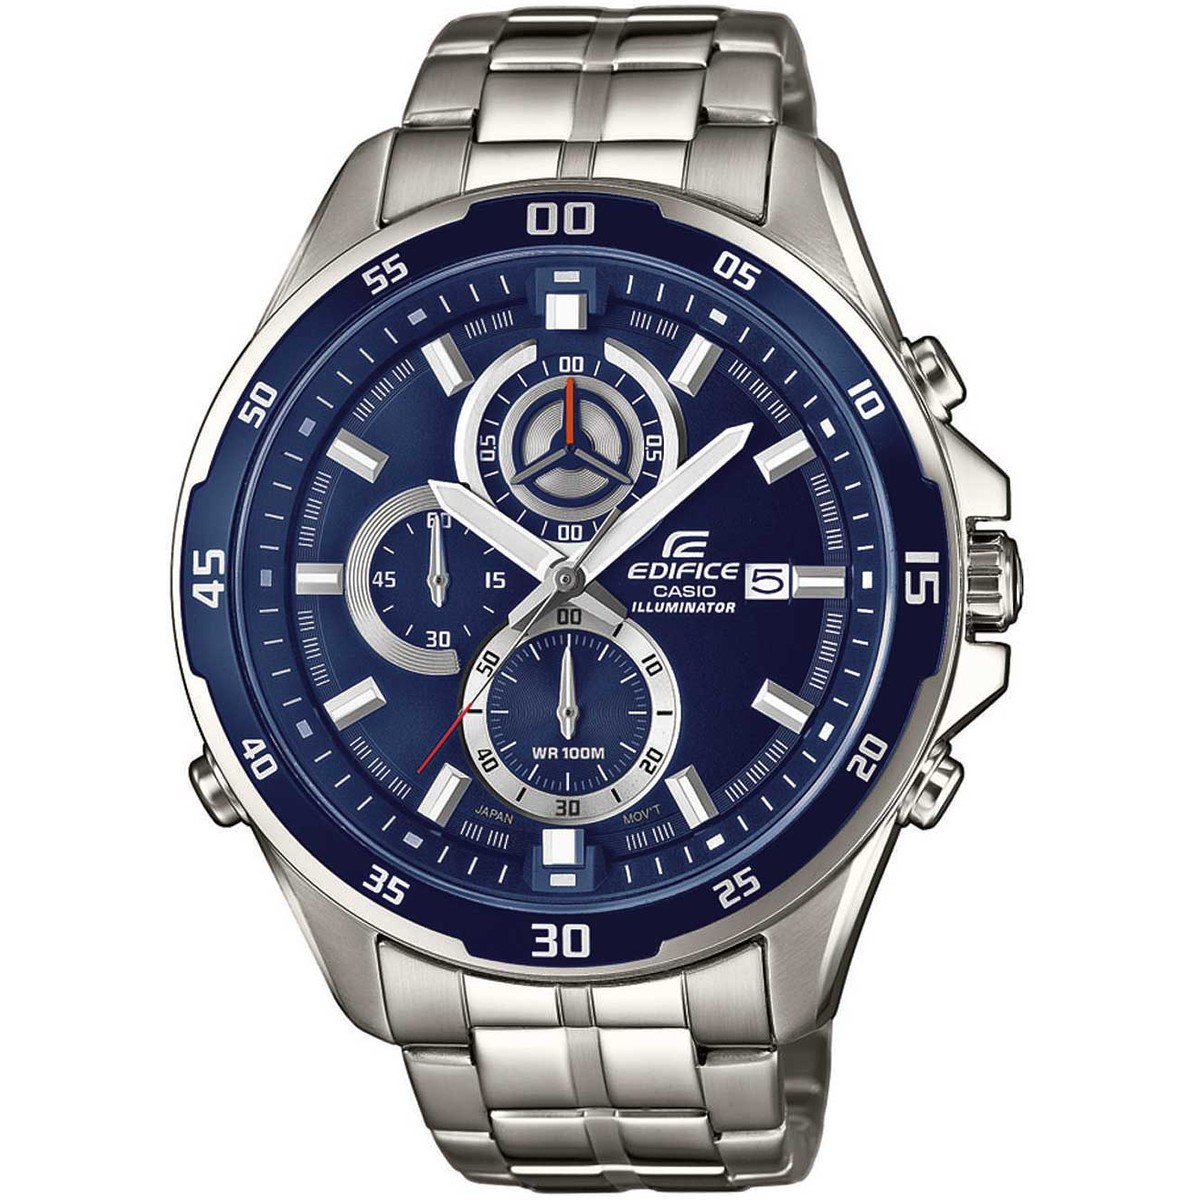 Ceas barbatesc Casio Edifice EFR-547D-2AVUEF original de mana